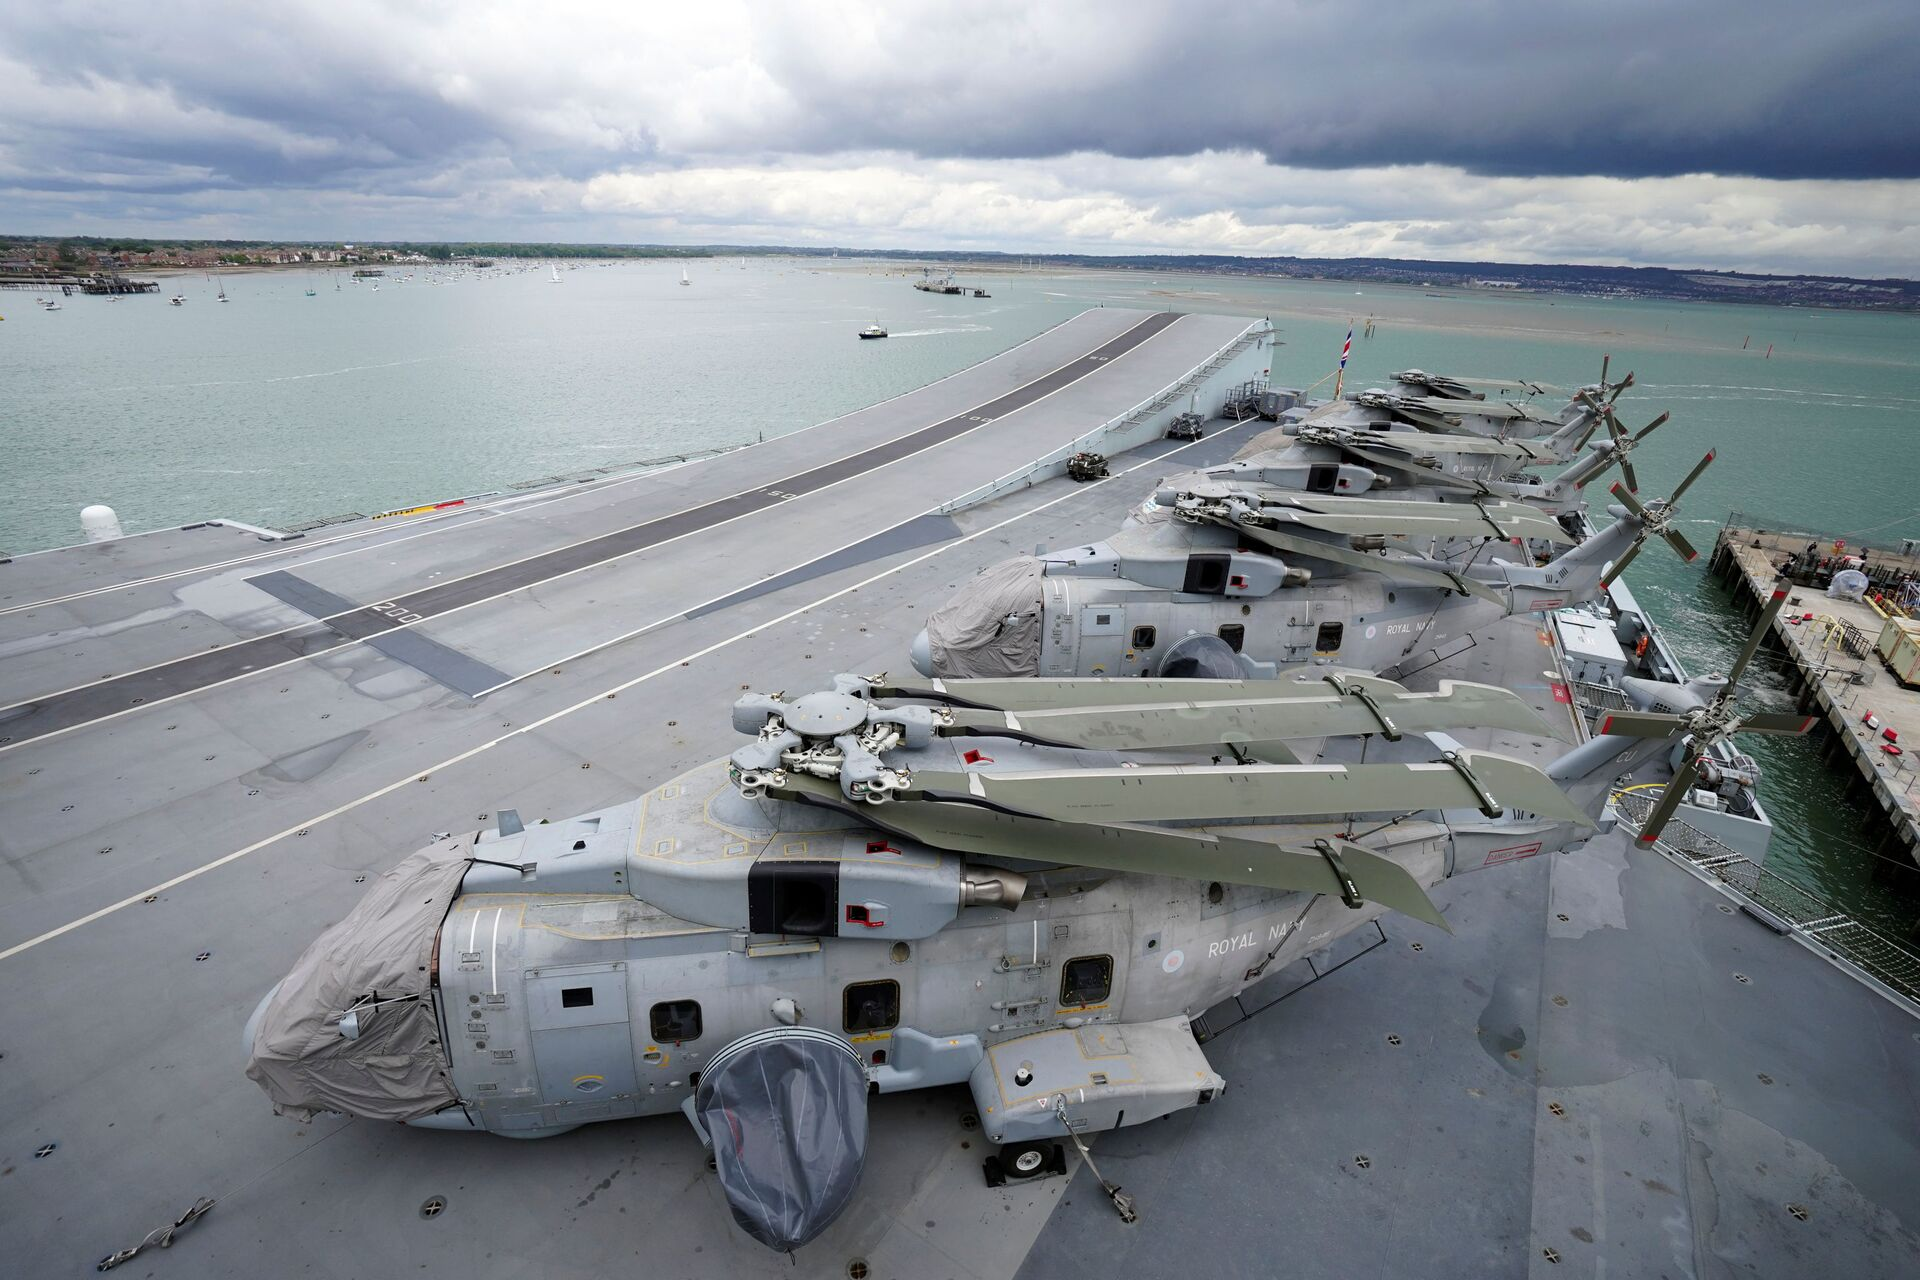 Royal Navy Merlin helicopters are seen on the flight deck during Britain's Queen Elizabeth's visit to HMS Queen Elizabeth ahead of the ship's maiden deployment at HM Naval Base in Portsmouth, Britain May 22, 2021 - Sputnik International, 1920, 13.09.2021